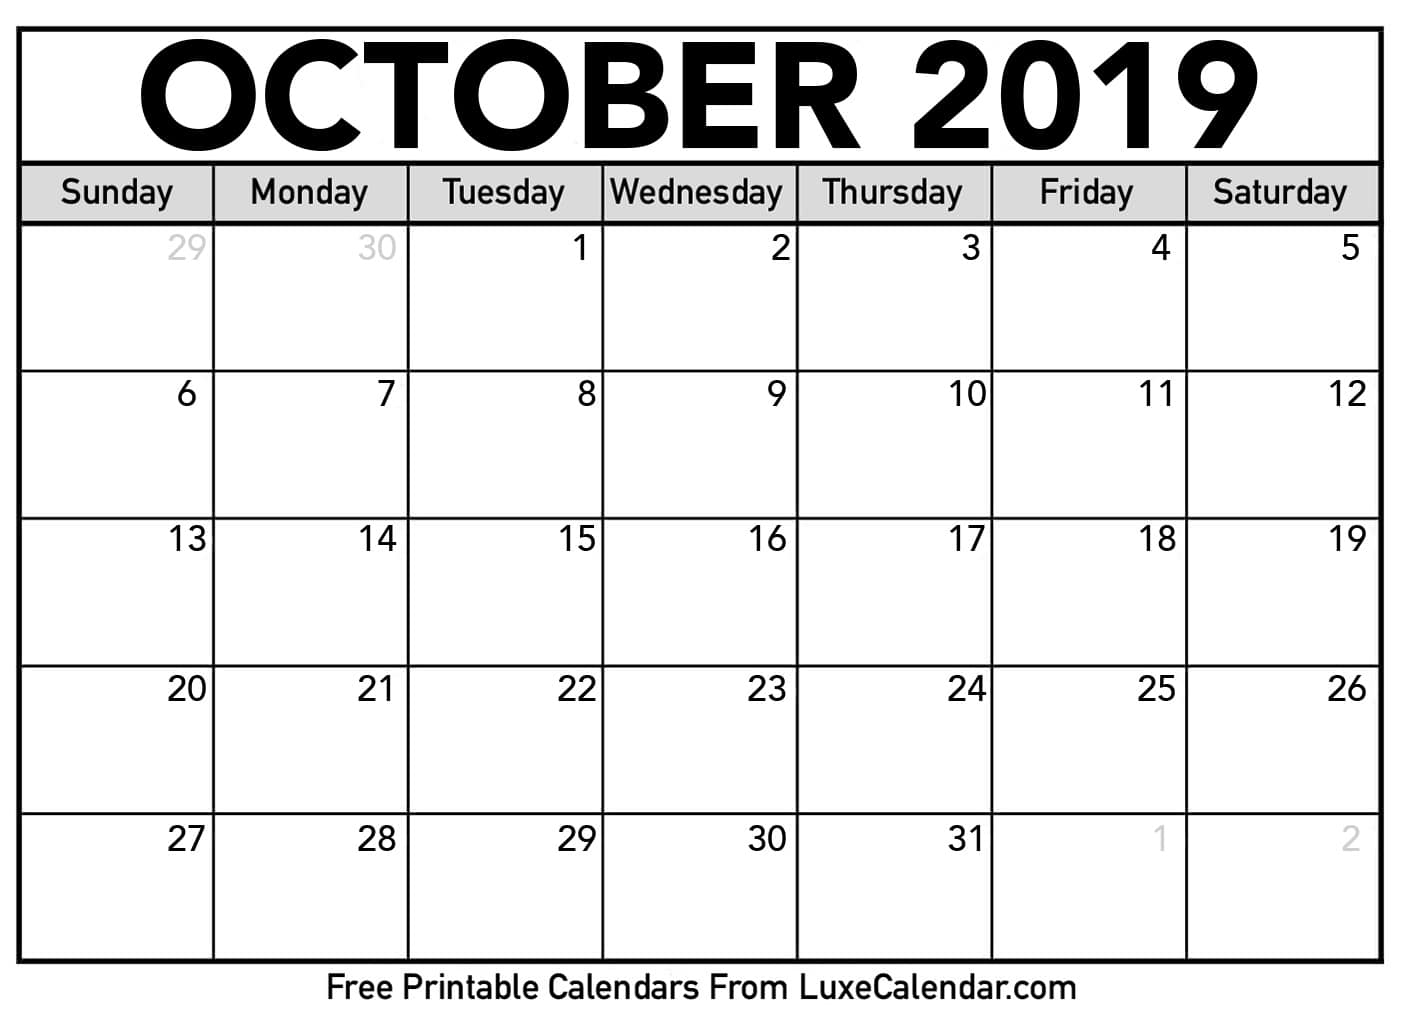 Blank October 2019 Calendar Printable - Luxe Calendar with regard to Free Printable Scary October Calendar 2019